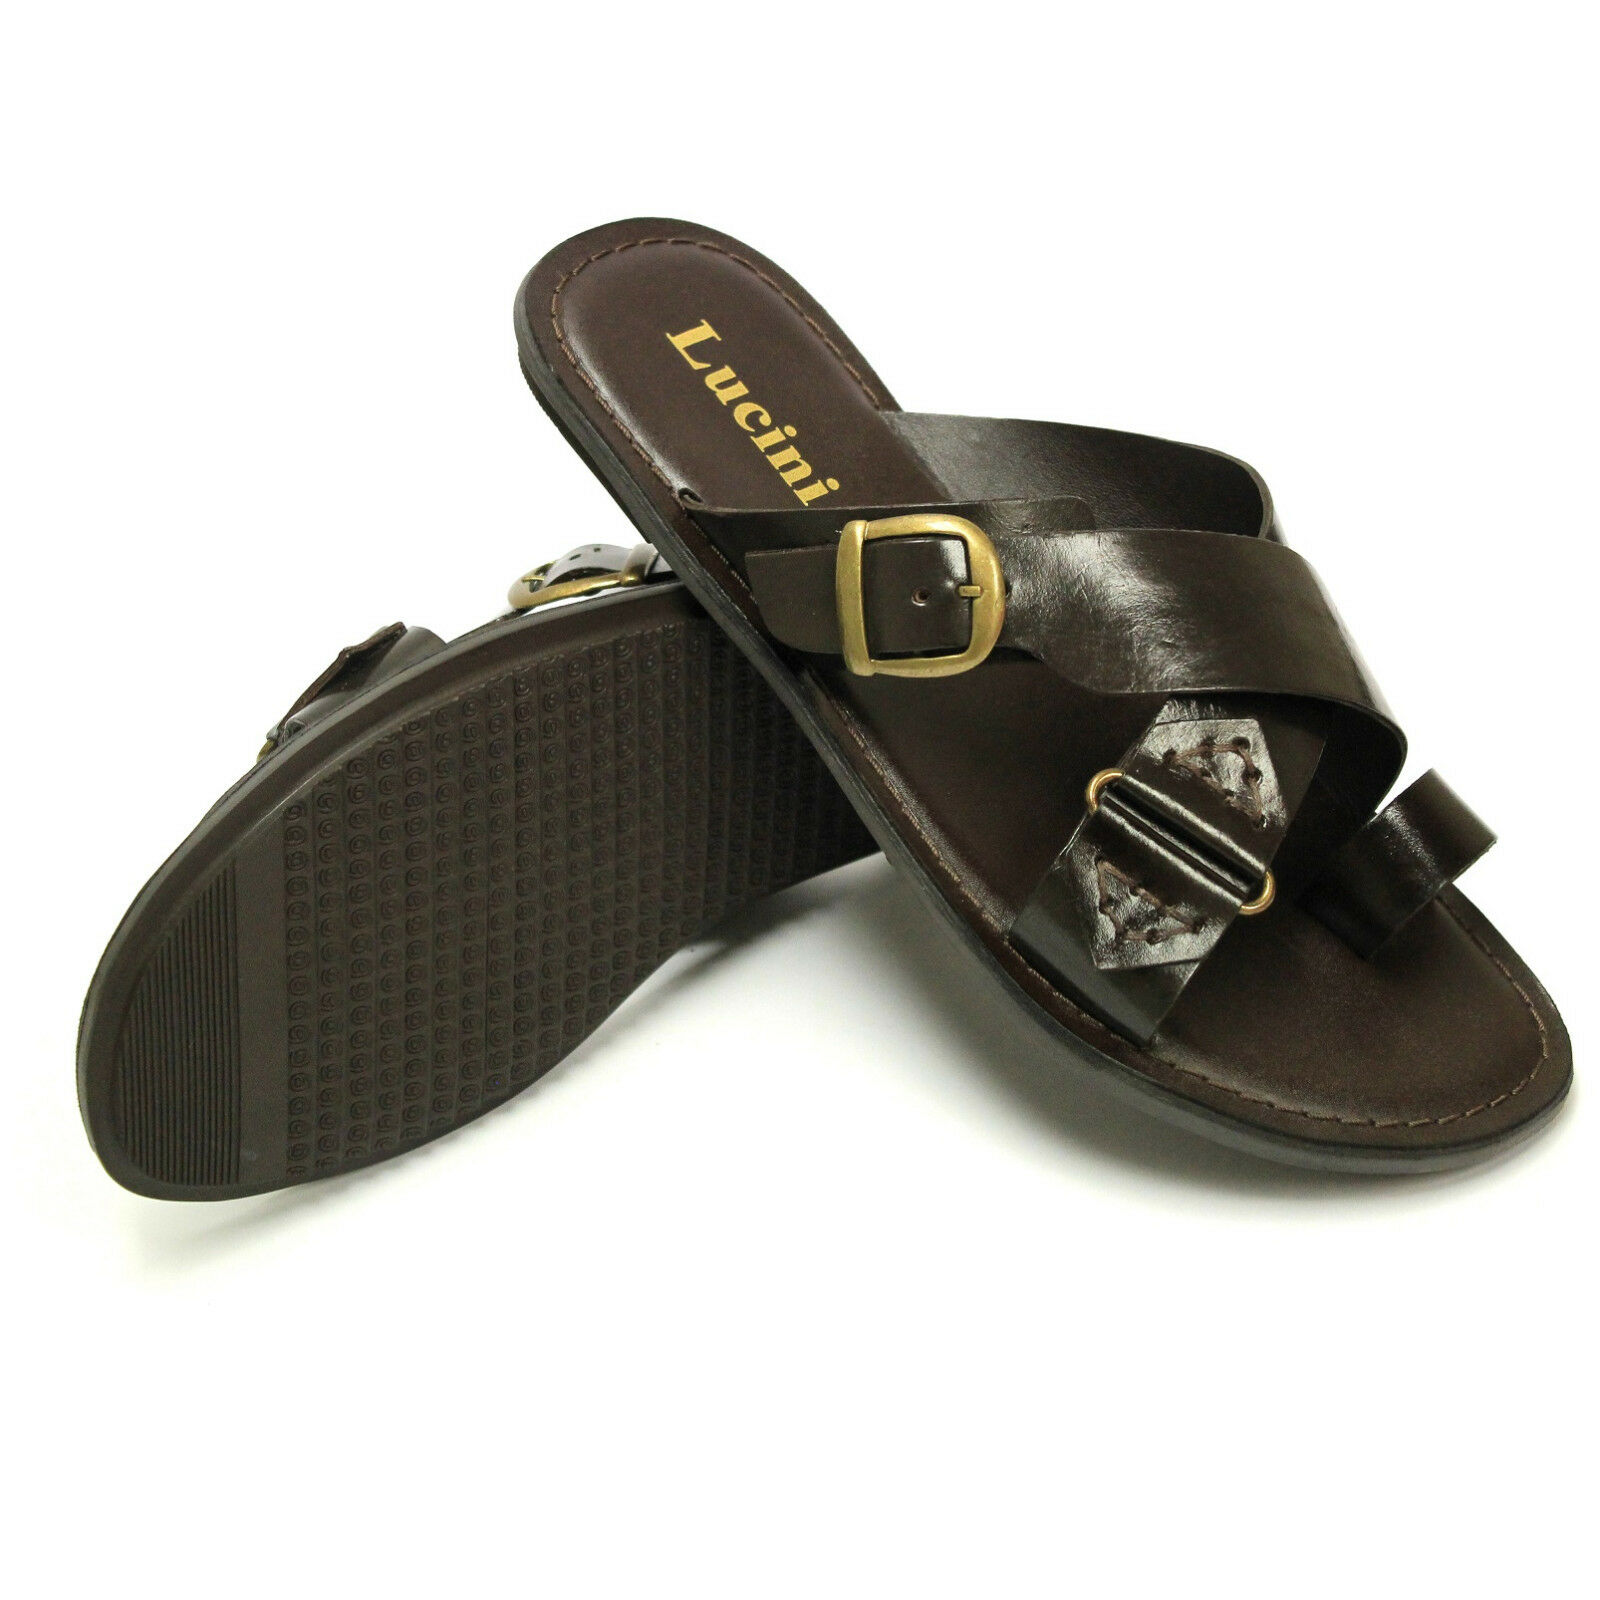 BRAND NEW LUCINI ORLANDO SUMMER BEECH MEN'S LEATHER BUCKLE SANDALS 61246 BROWN